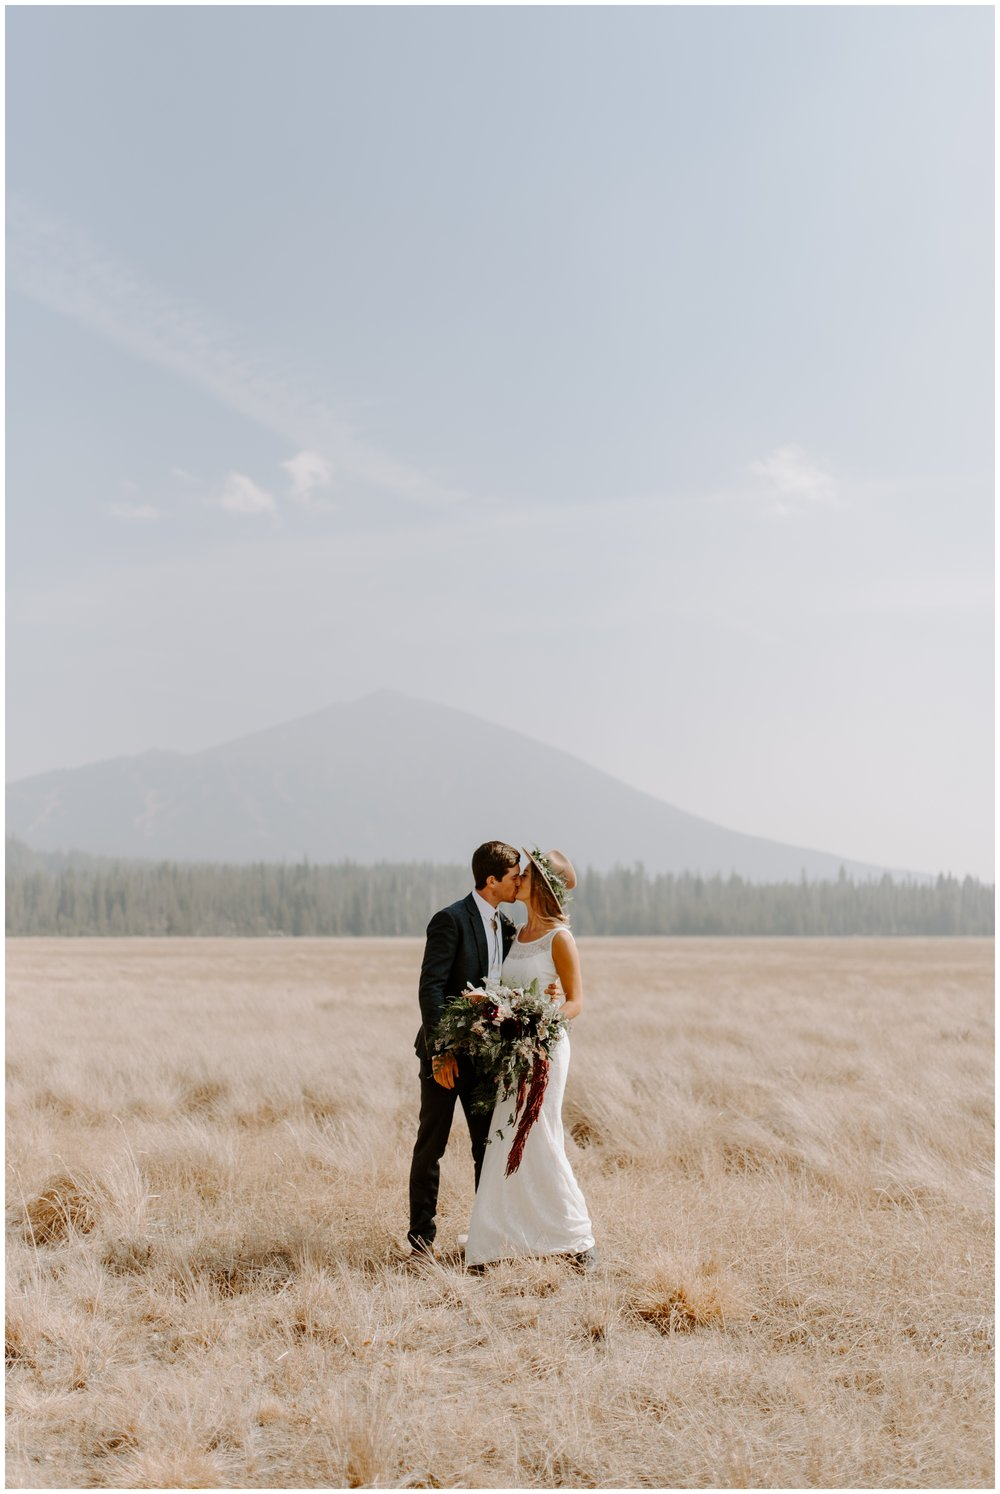 Bend Boho Campsite Wedding Eastern Oregon - Jessica Heron Images_0060.jpg